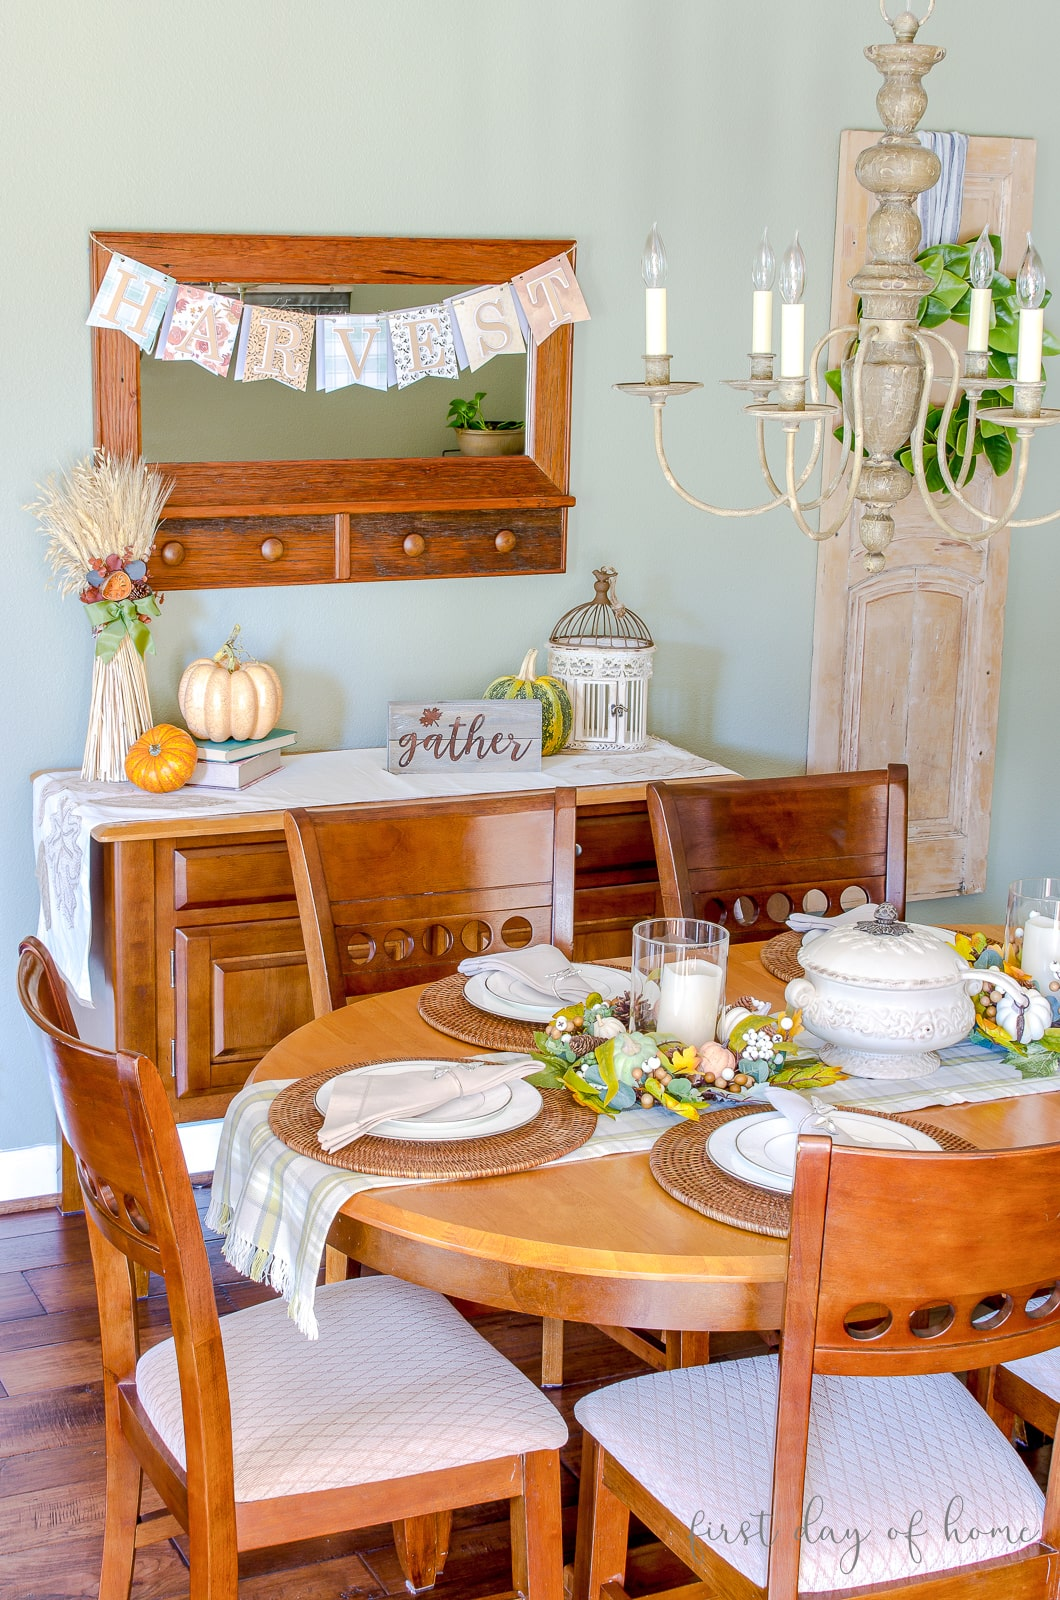 Breakfast room decorated for fall